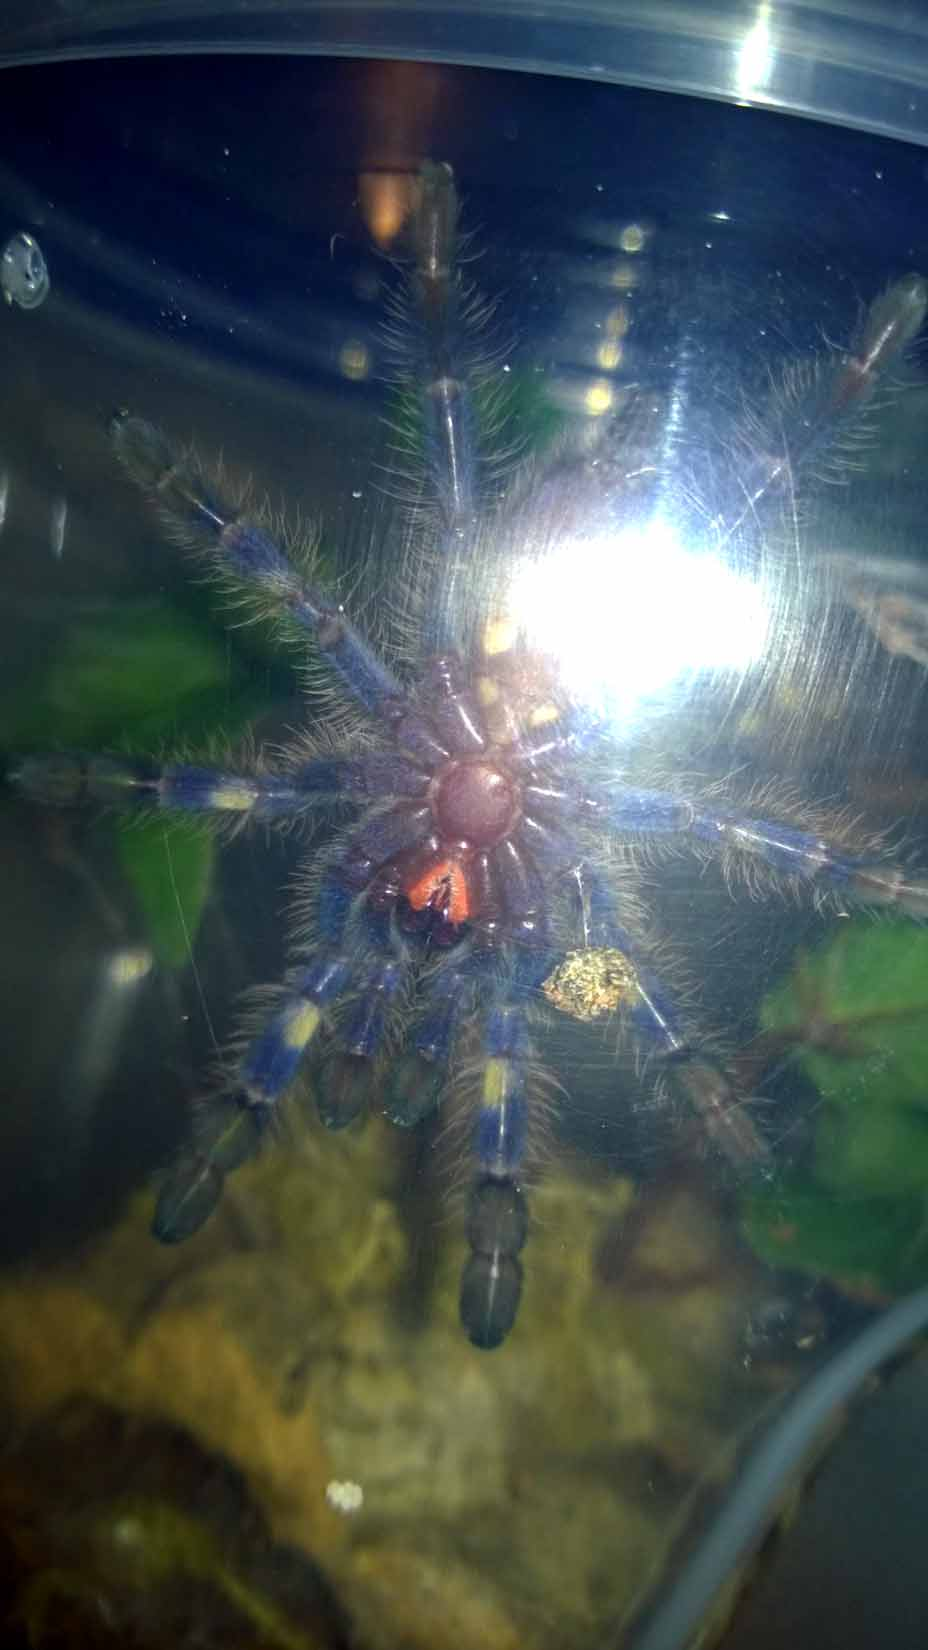 The Poecilotheria metallica – Yes, Tarantulas Can Be